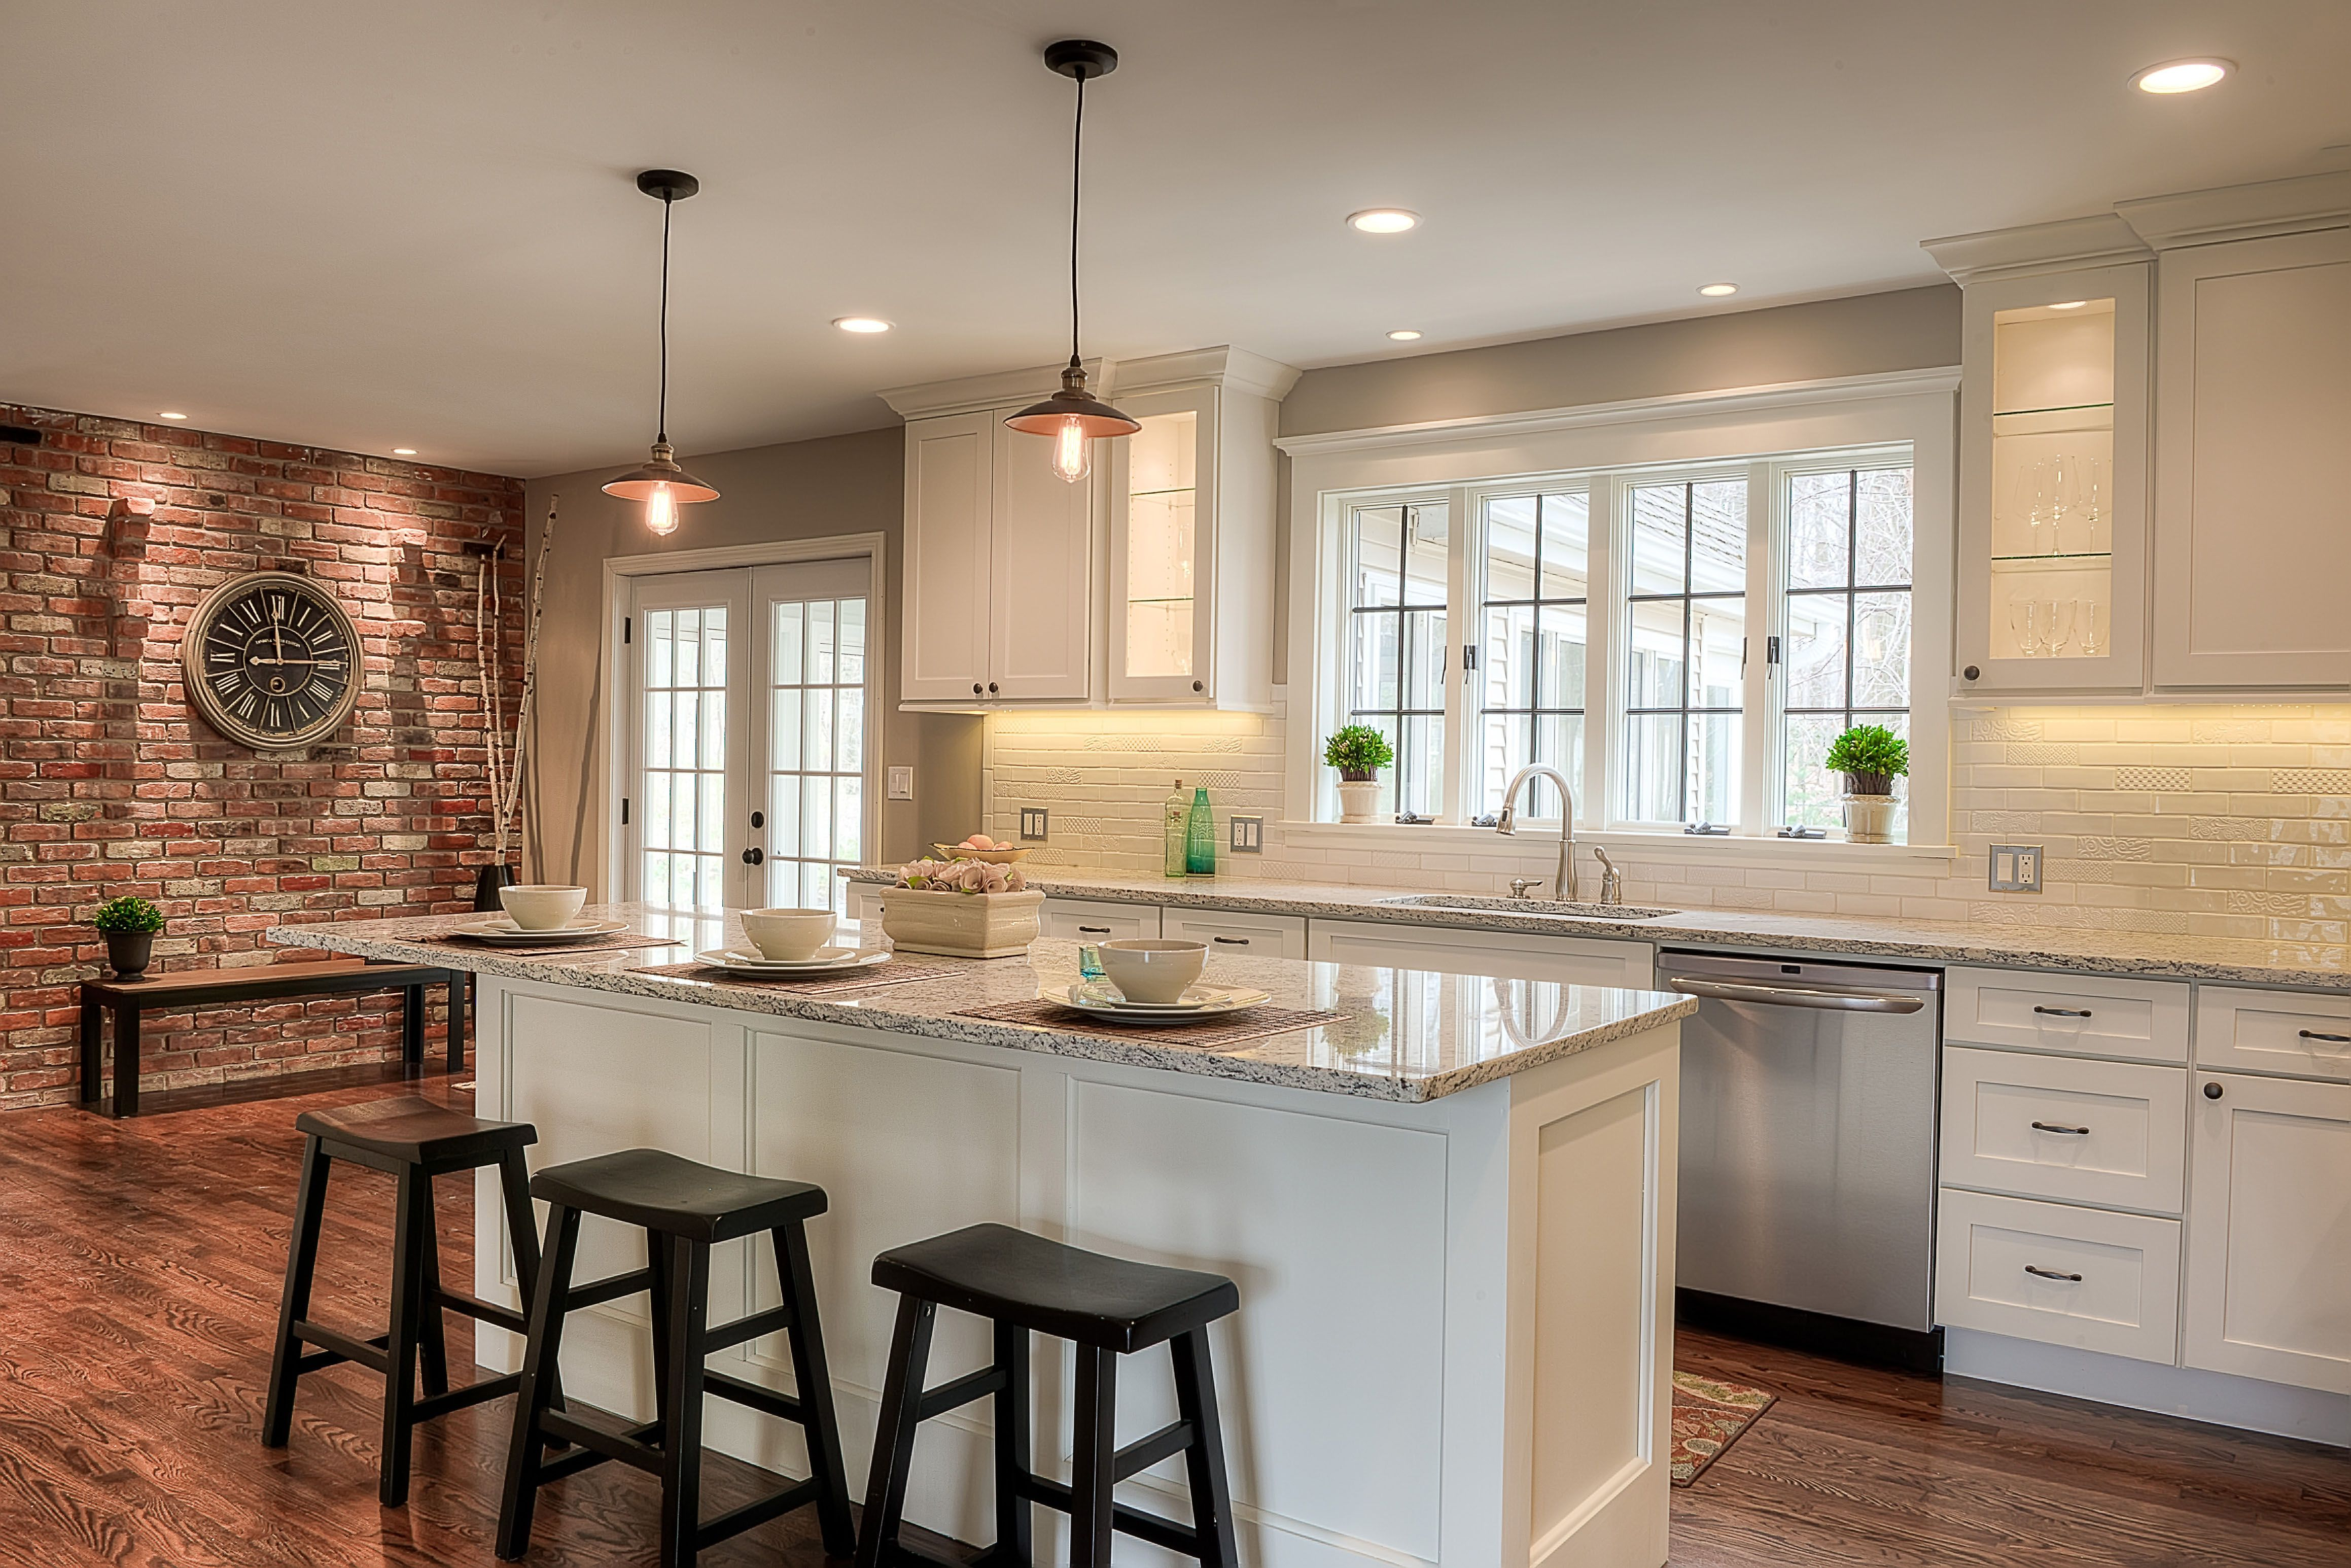 White Painted Kitchen Cabinets Featuring The Dayton Style From Cliqstudios Com Kitchen Cabinet Door Styles Kitchen Design Kitchen Layout